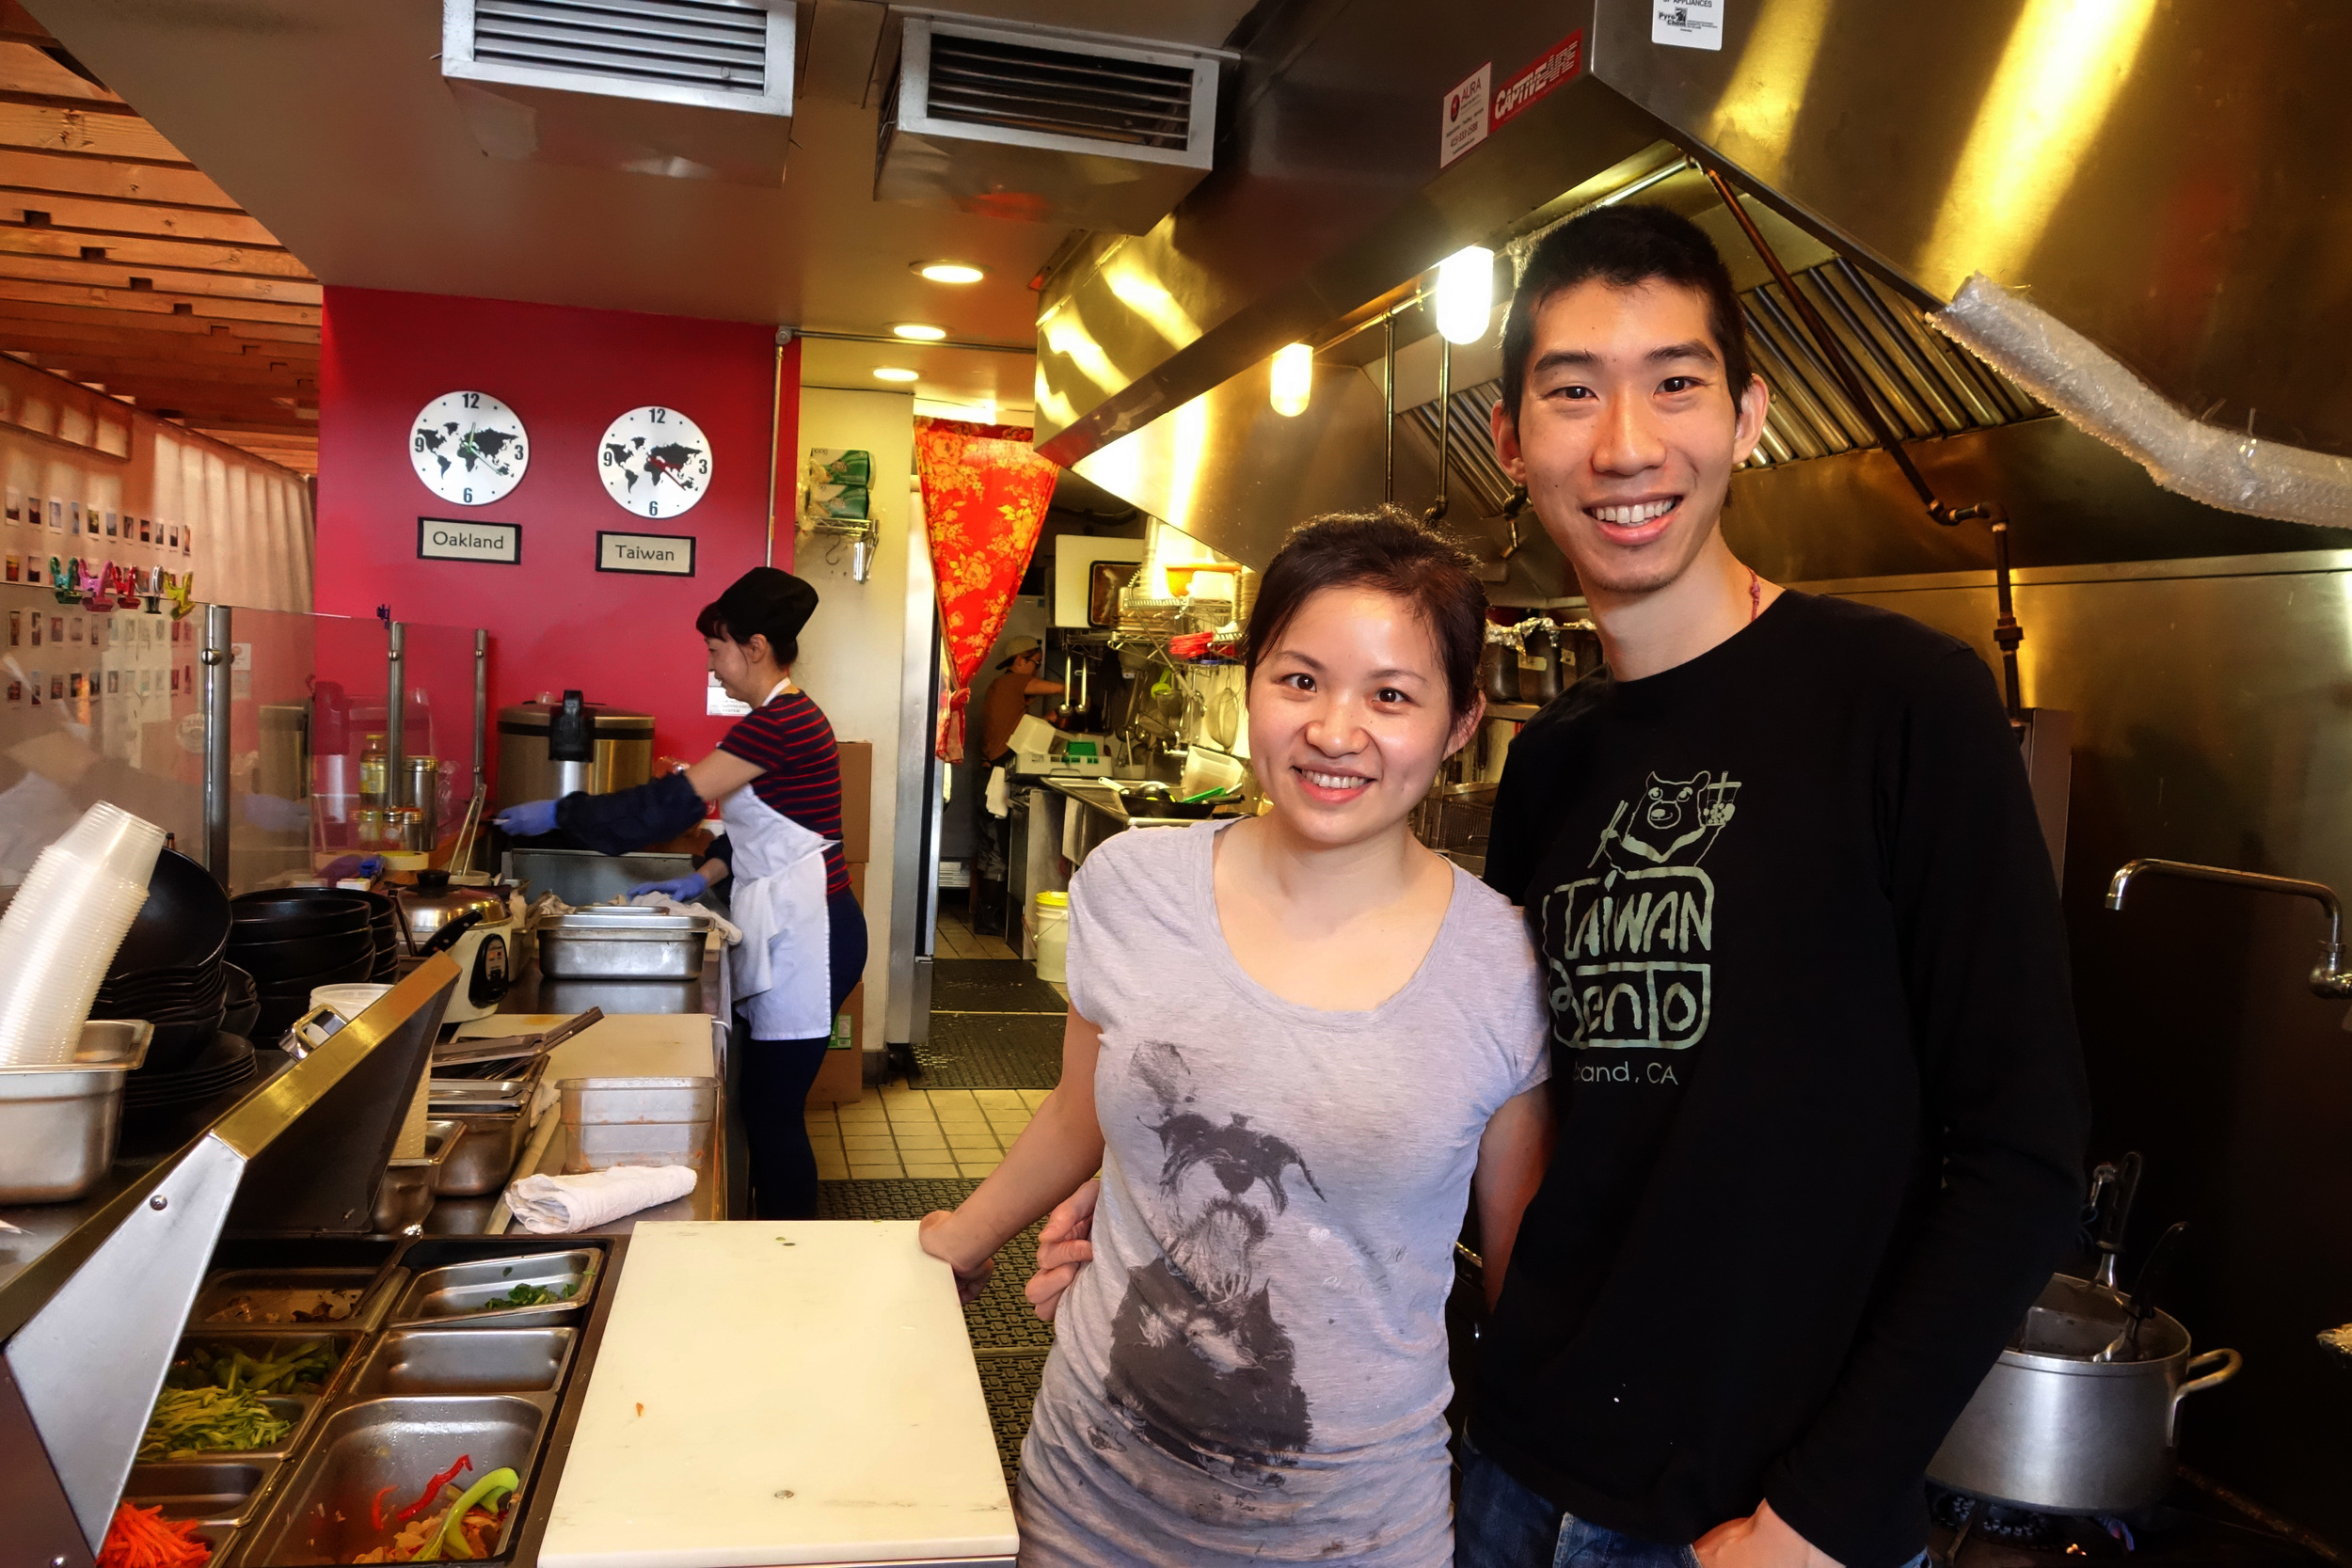 Owners (Stacy Tang (Left) & WIlly Wang (Right) in the kitchen of Taiwan Bento.